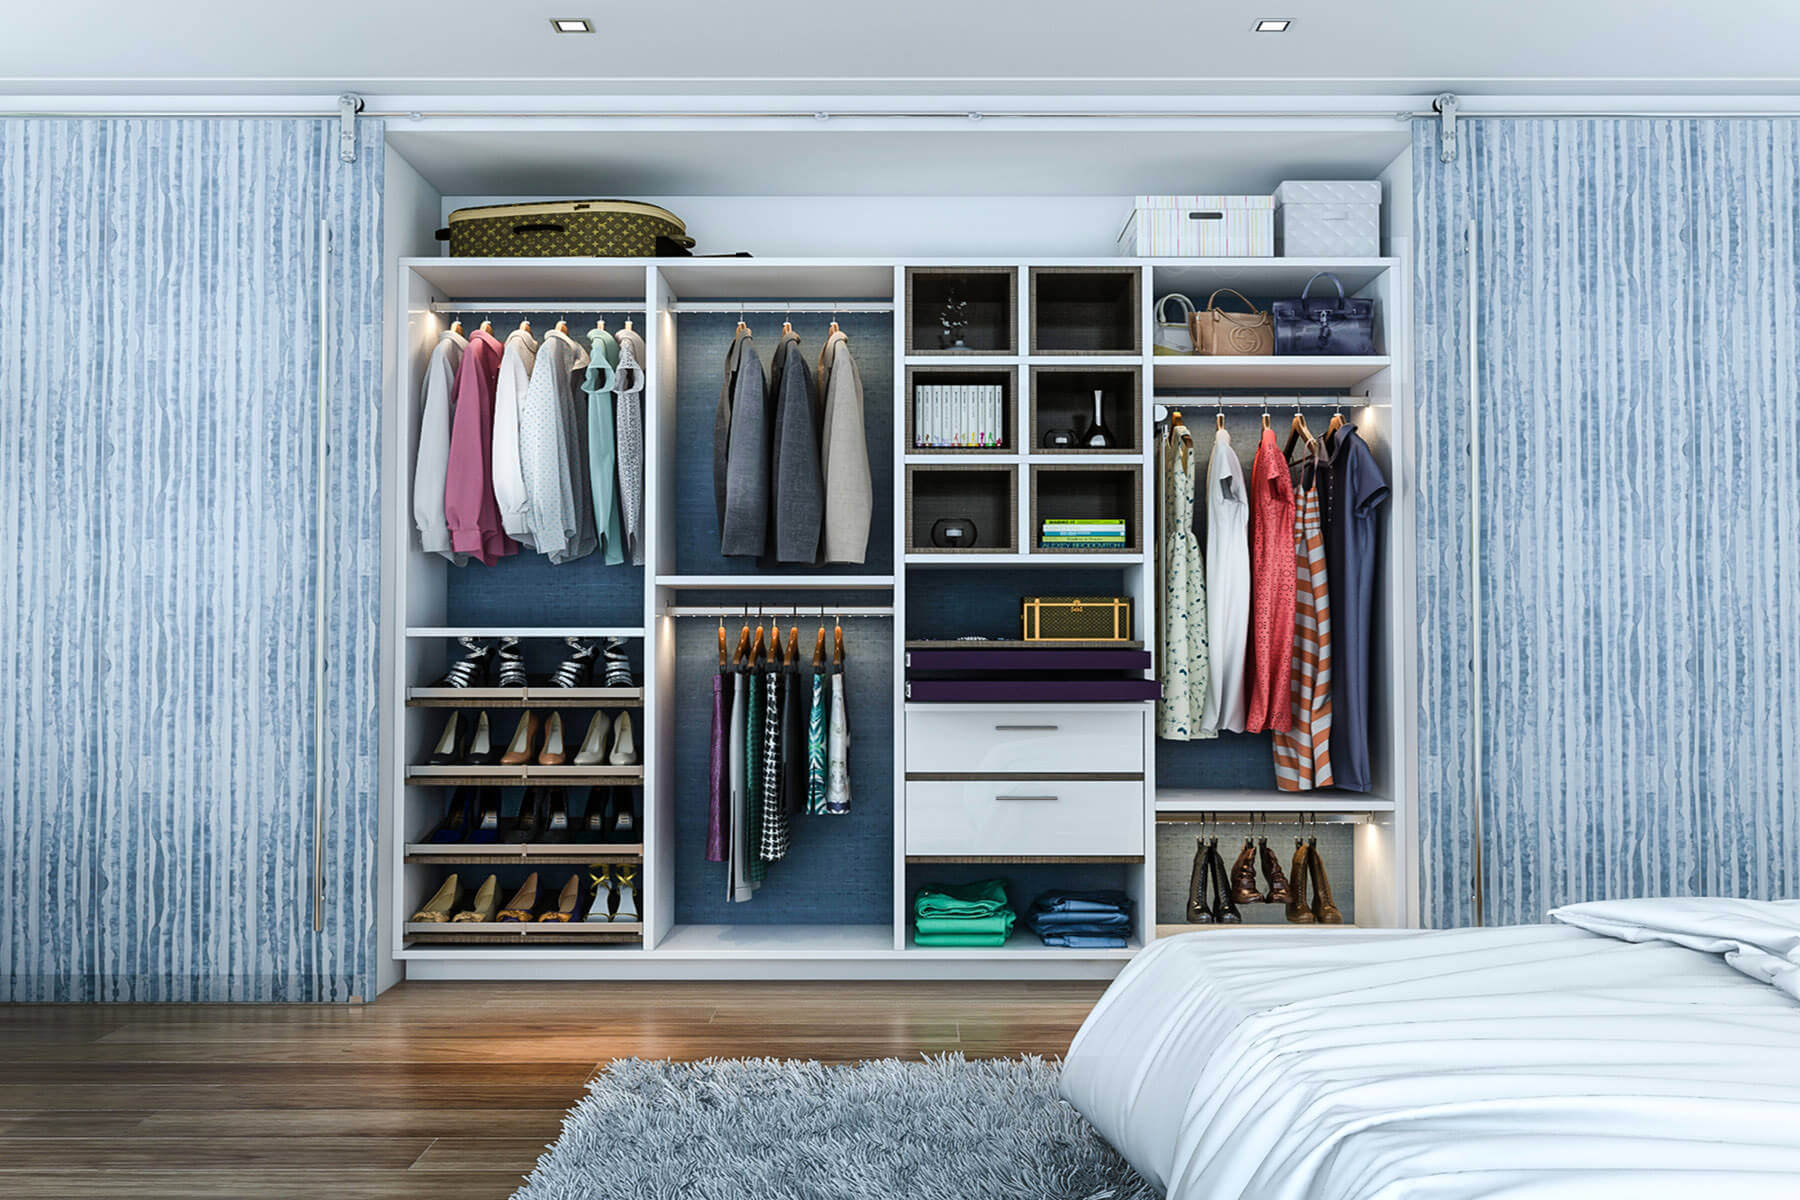 45 Custom Closet Organizer Ideas (Reach-In Design Photos)